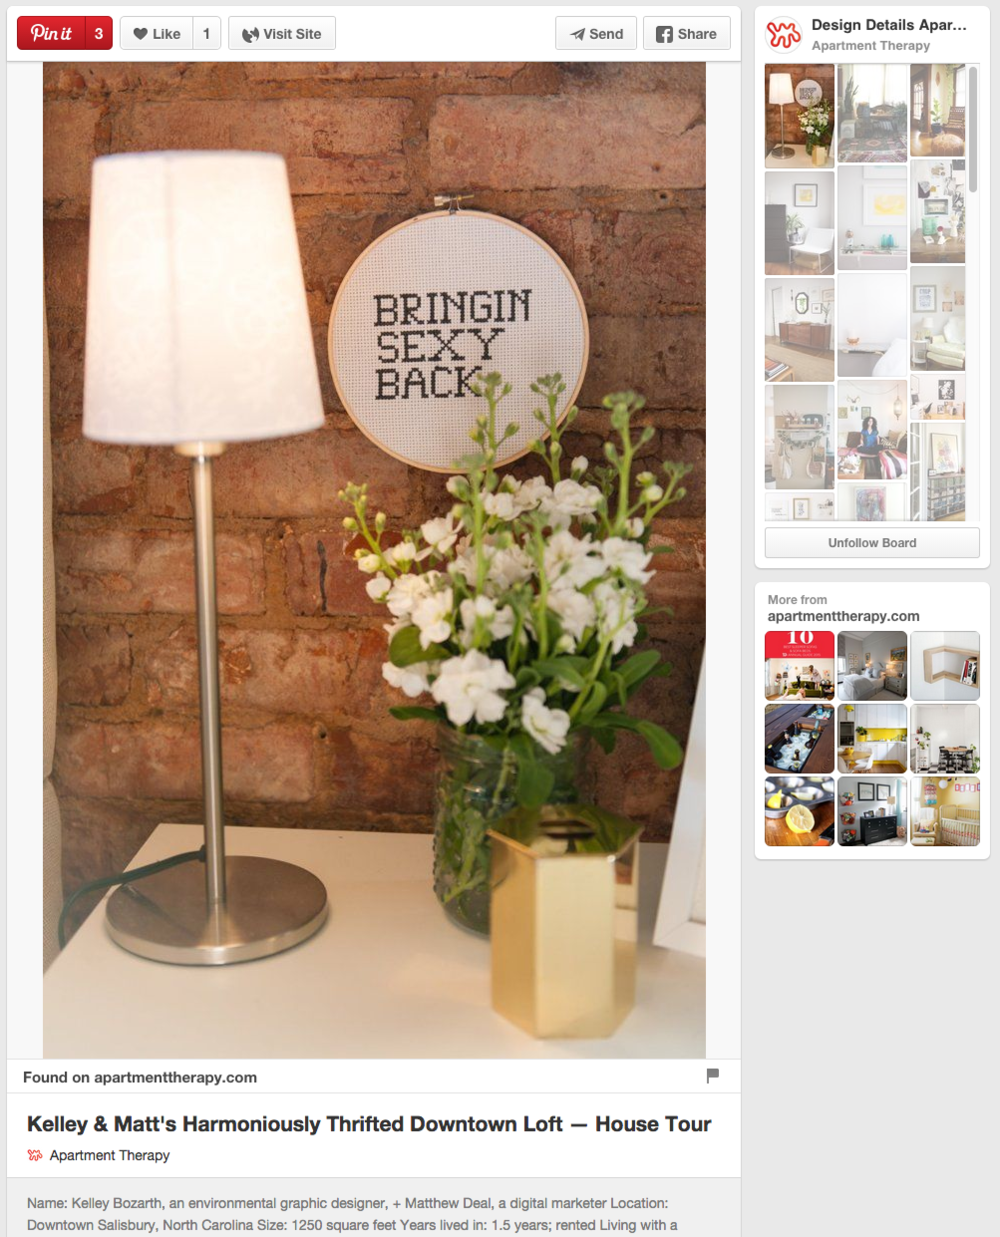 And now I get to watch ApartmentTherapy pin pictures of my nightstand.  Yesssss.